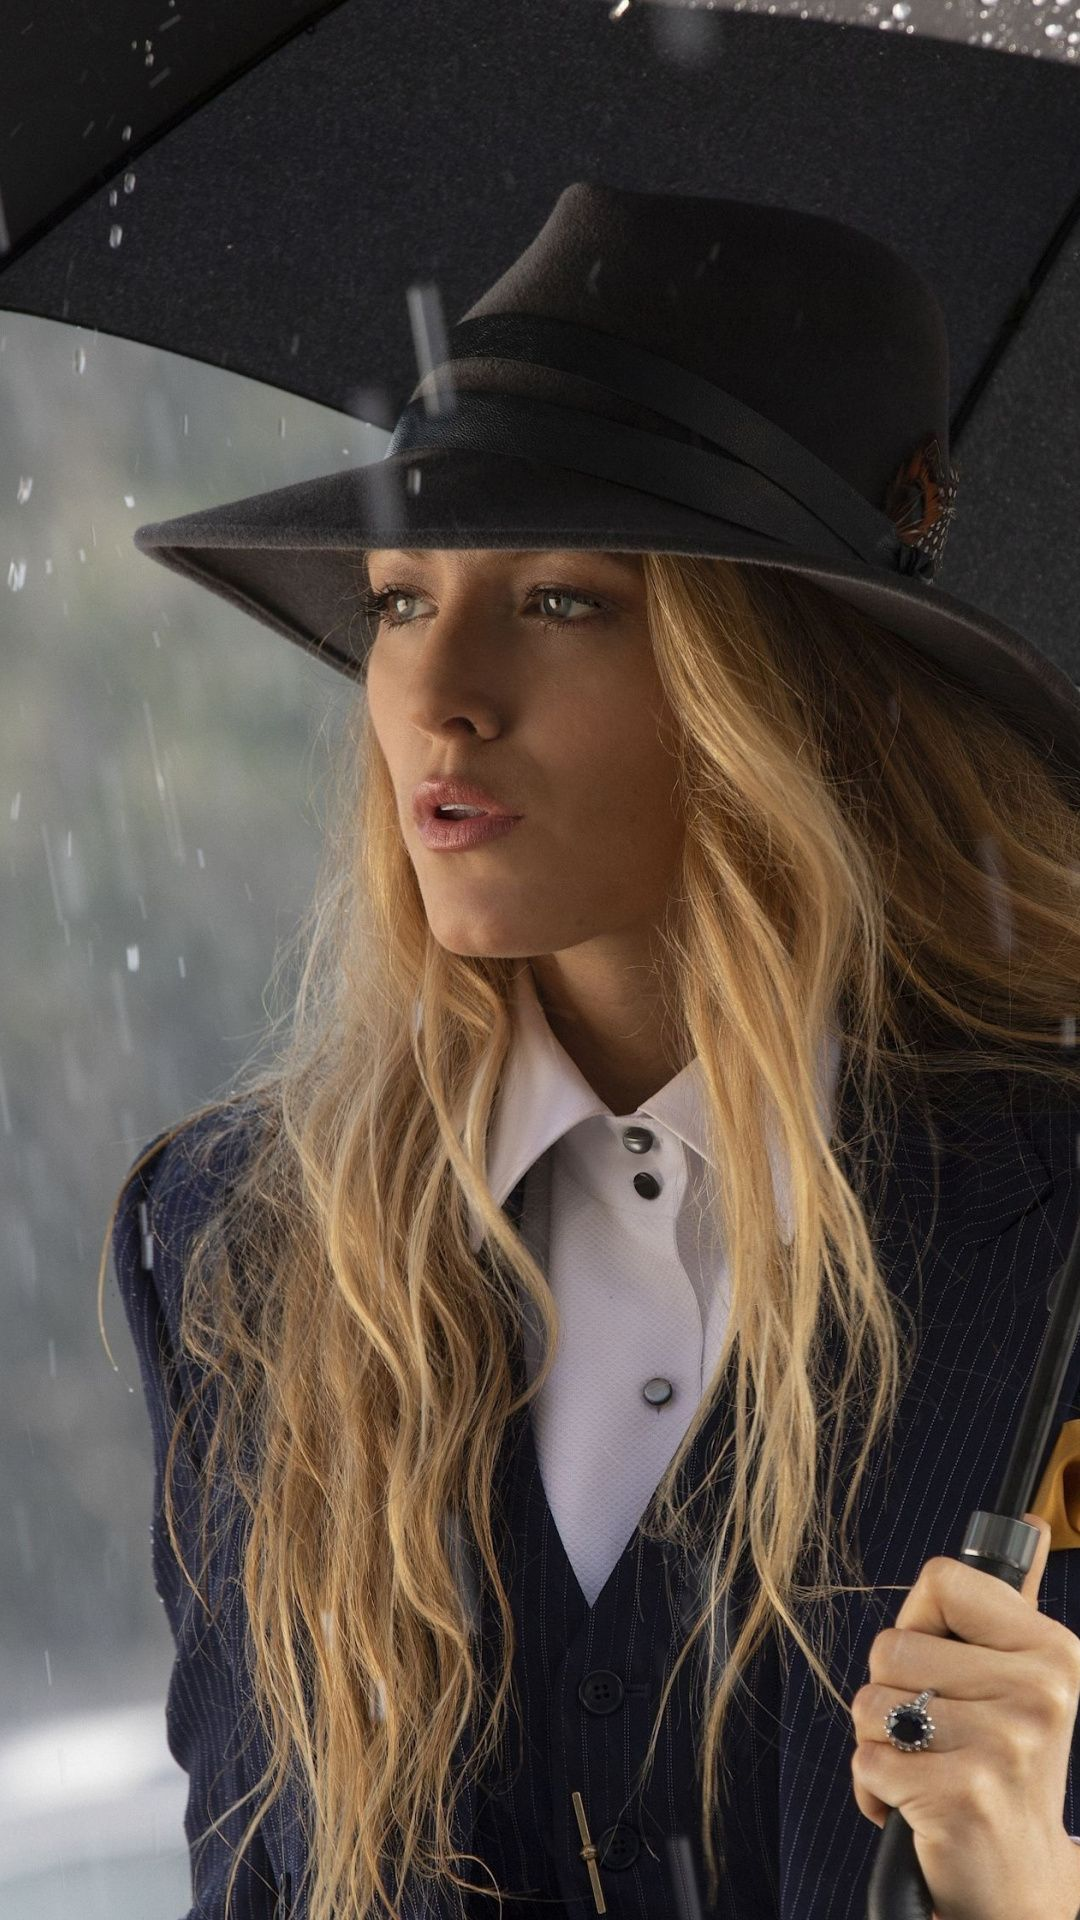 Movie A Simple Favor Blake Lively With Umbrella 1080x1920 Wallpaper Blake Lively Style Fashion Blake Lively